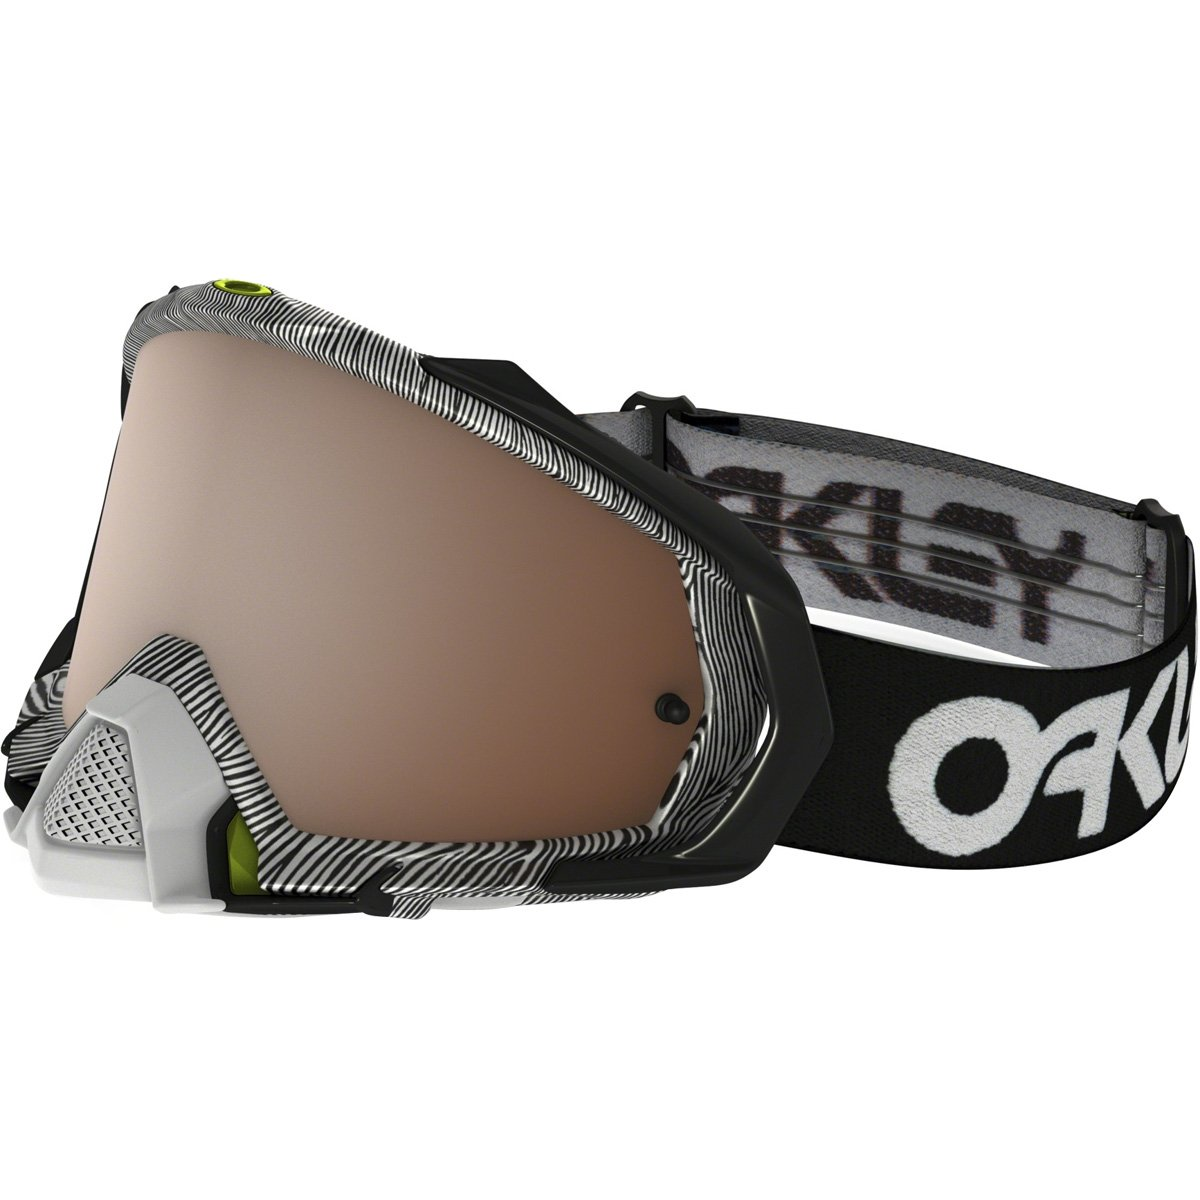 Oakley Mayhem Pro MX FP Thumbprint Men's Dirt Motocross Motorcycle Goggles Eyewear - Black White/Black Iridium/One Size Fits All